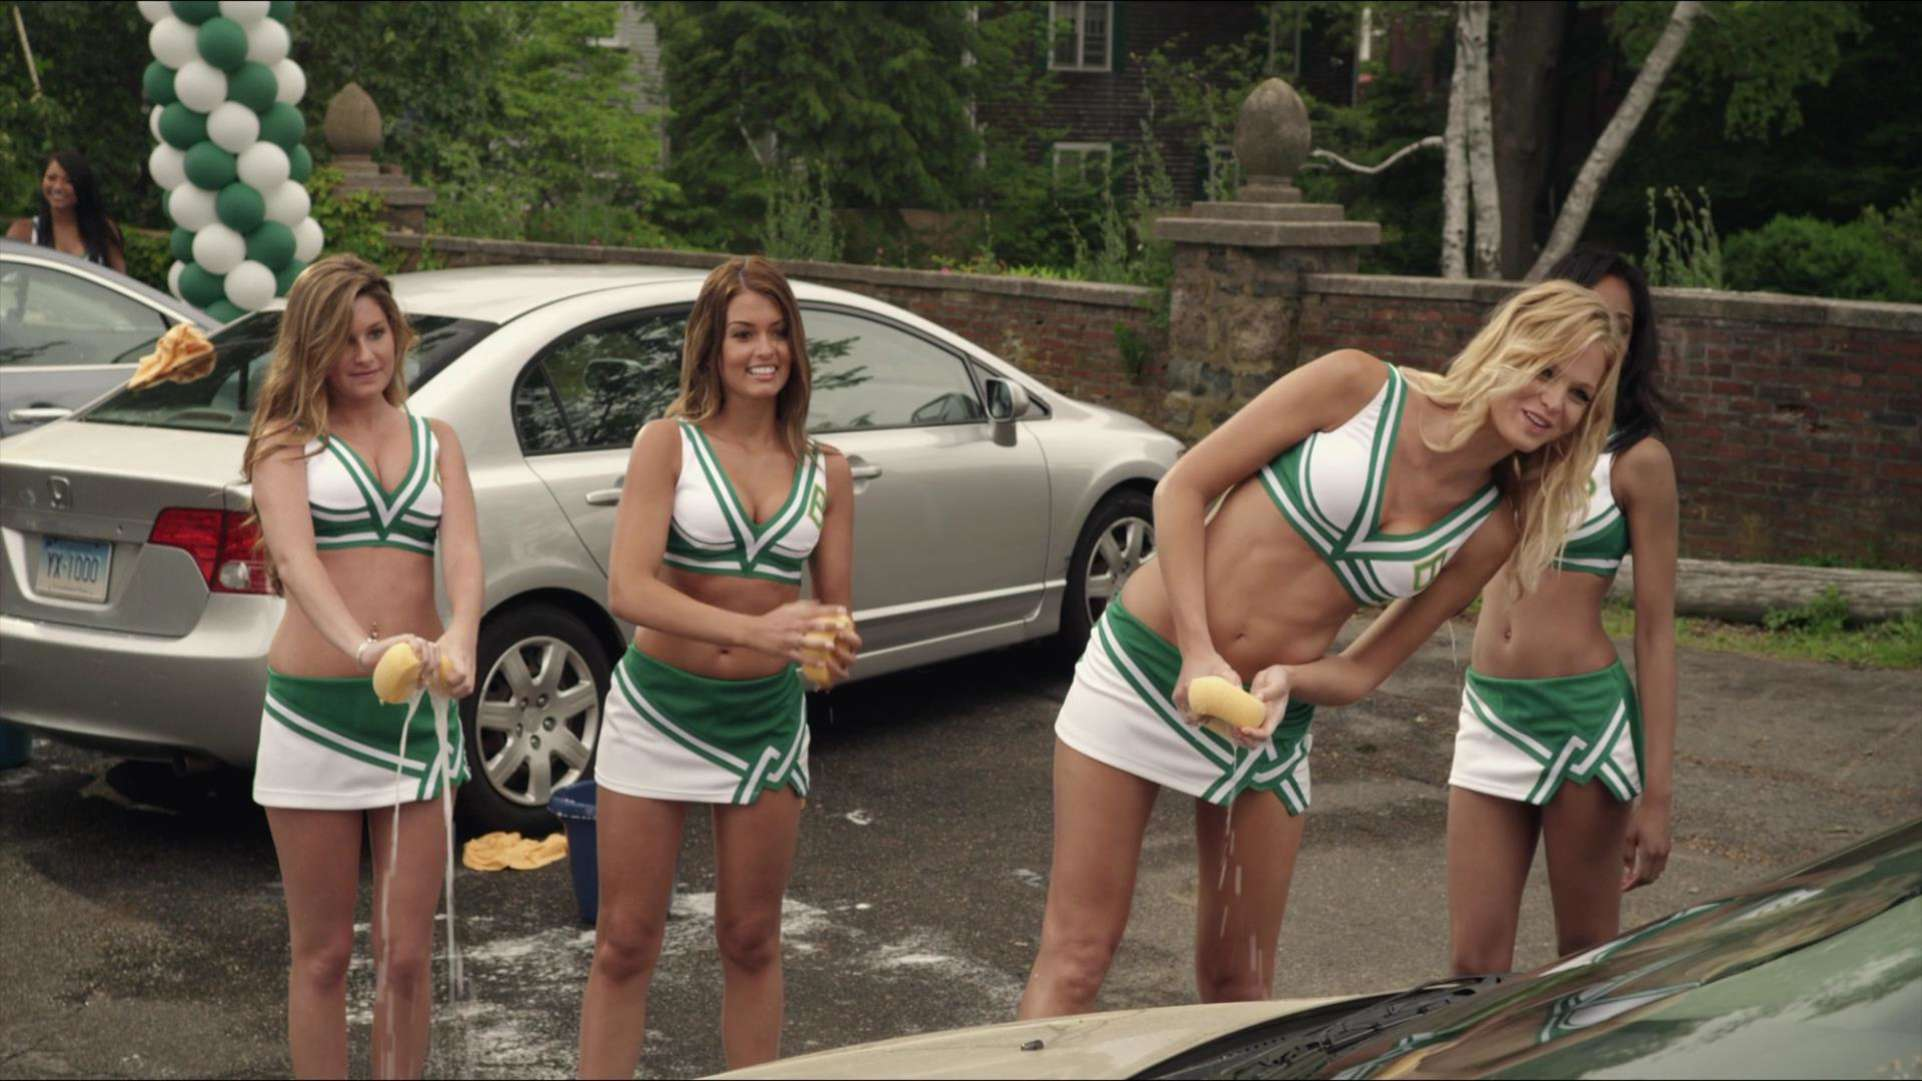 Erin Heatherton 2013 : Erin Heatherton Hot in Grown Ups 2-24